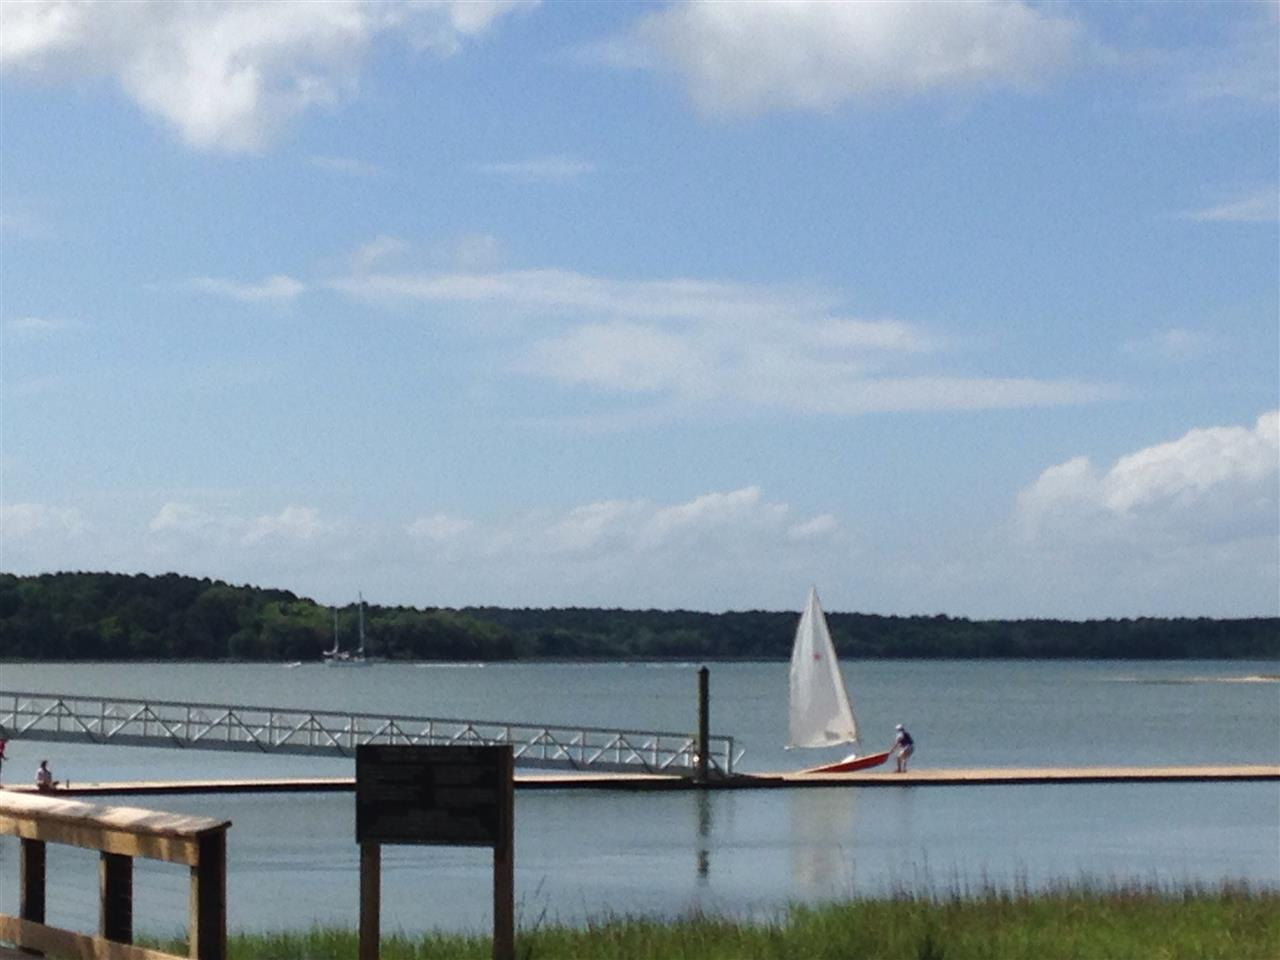 Hilton Head Island SC,  Rowing and Sailing Center at Squire Pope Community Park on Skull Creek